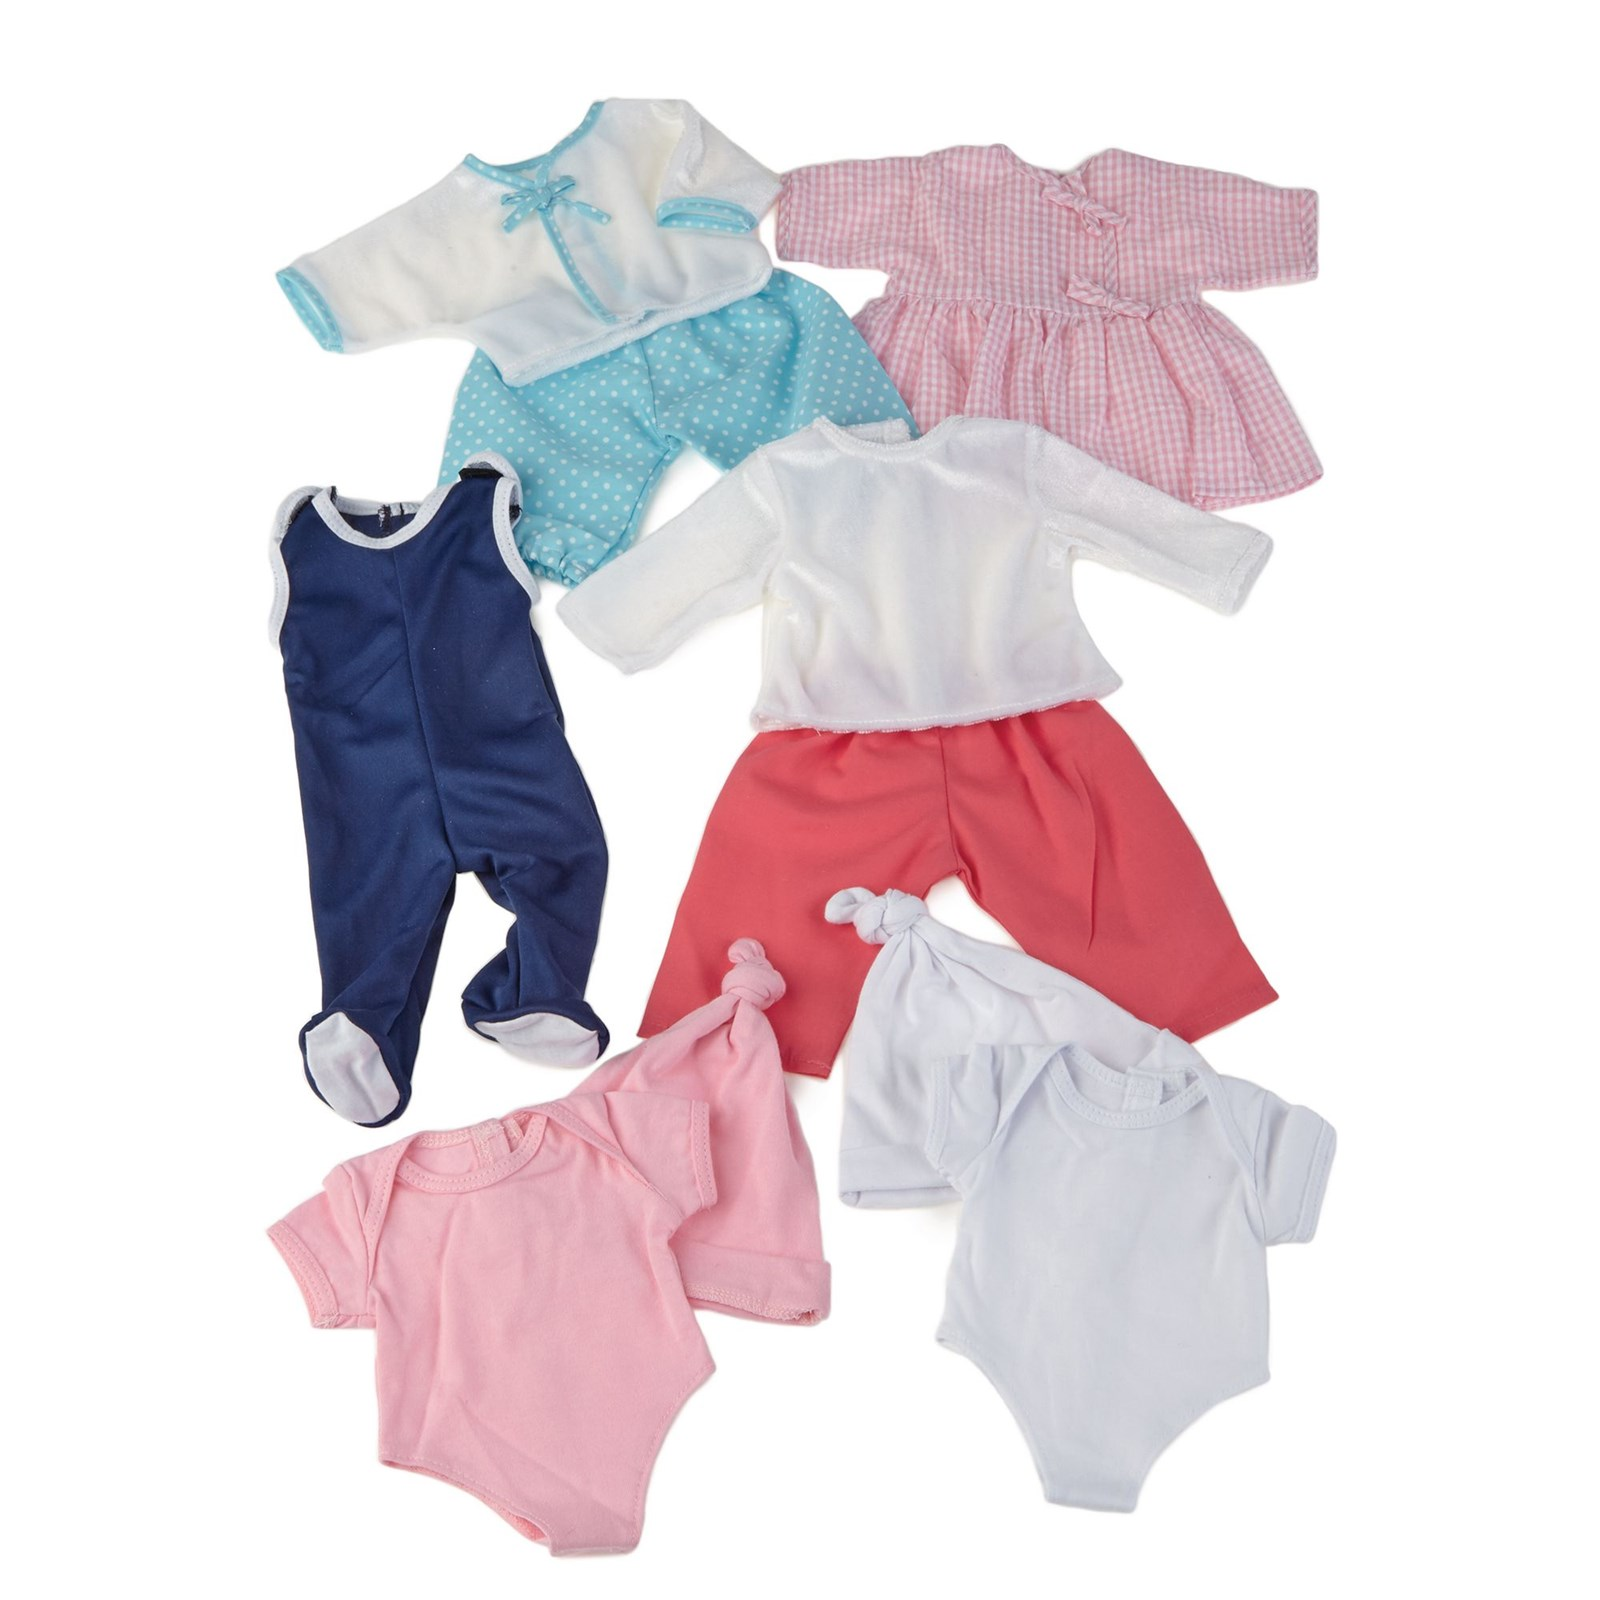 Baby Doll Clothes Pack of 6